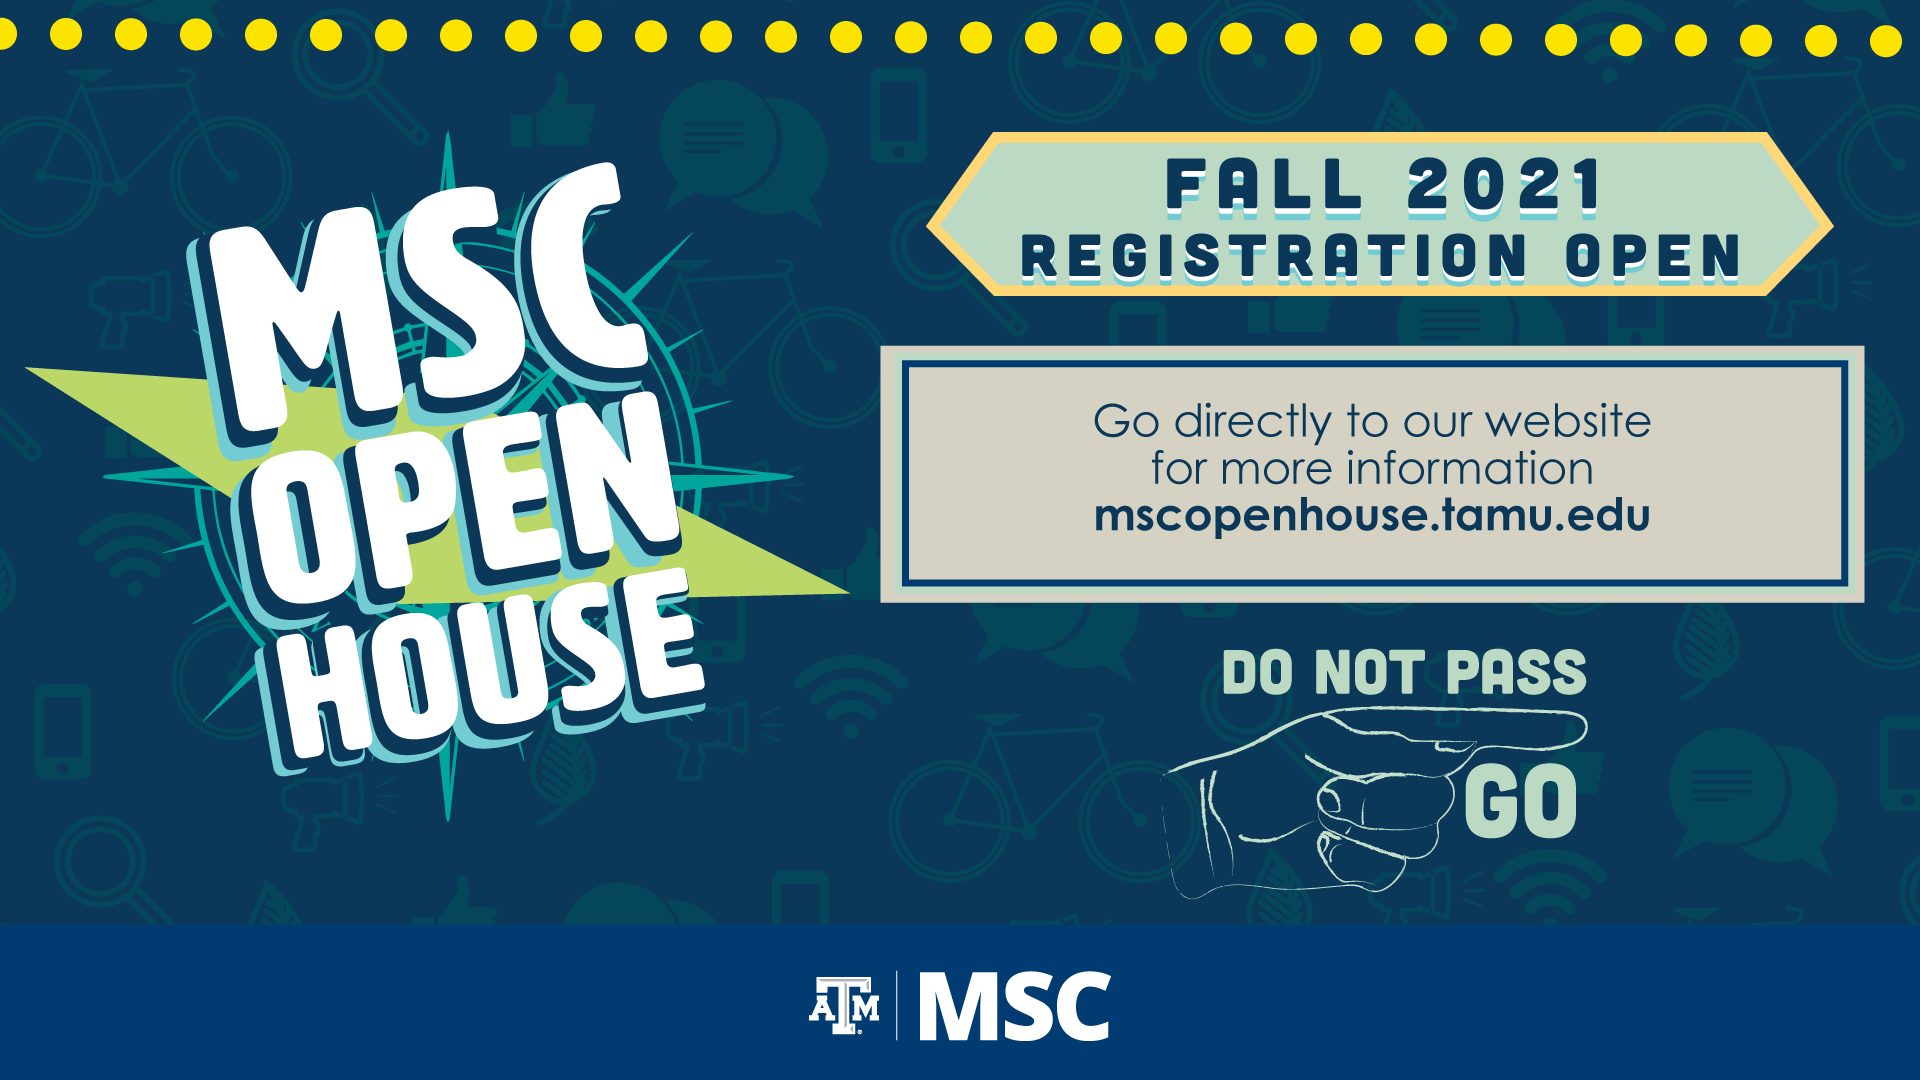 MSC Open House Fall 2021 Registration Open, Go directly to our website for more information; mscopenhouse.tamu.edu